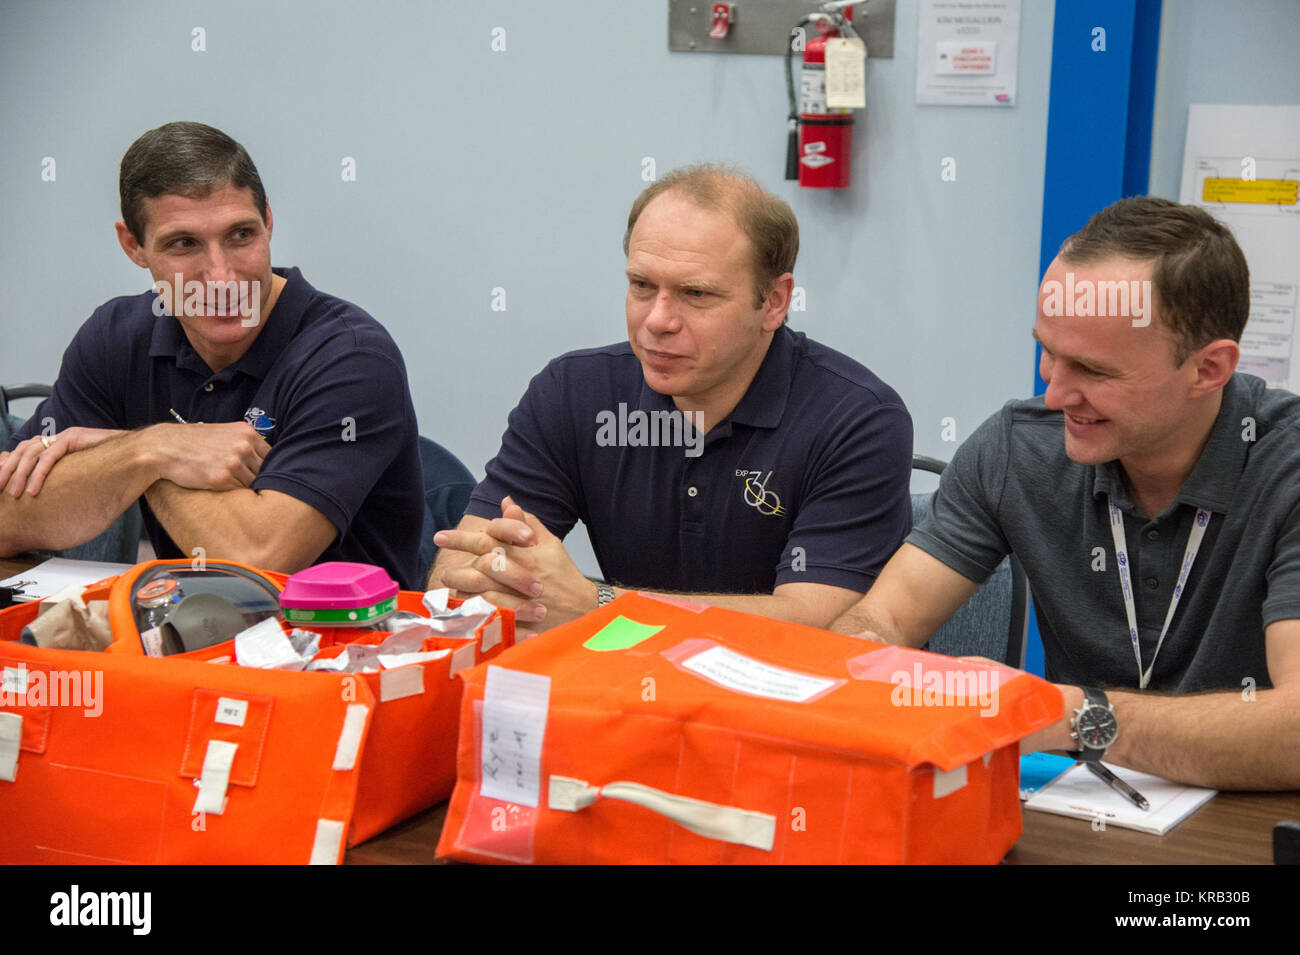 DATE: 1-24-13 LOCATION: Bldg. 9NW - ISS Mockups  SUBJECT: Expedition 38 crew members, Kotov, Ryazansky and Mike - Stock Image